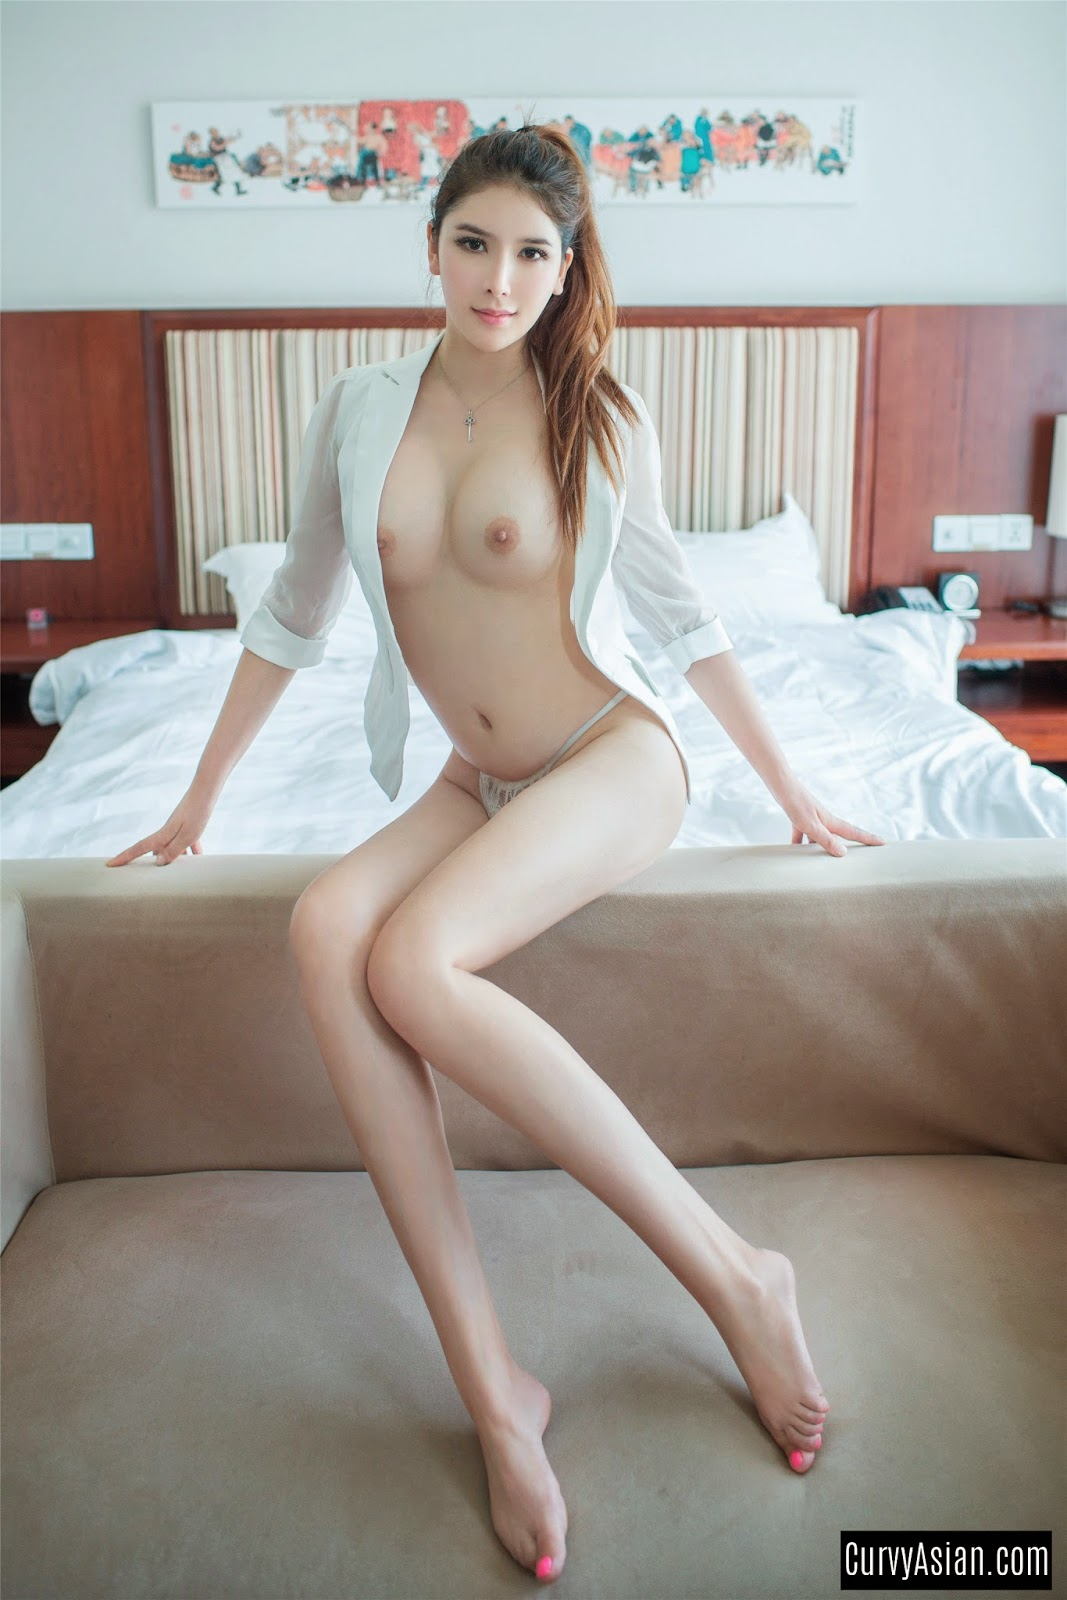 Really old women videos nude